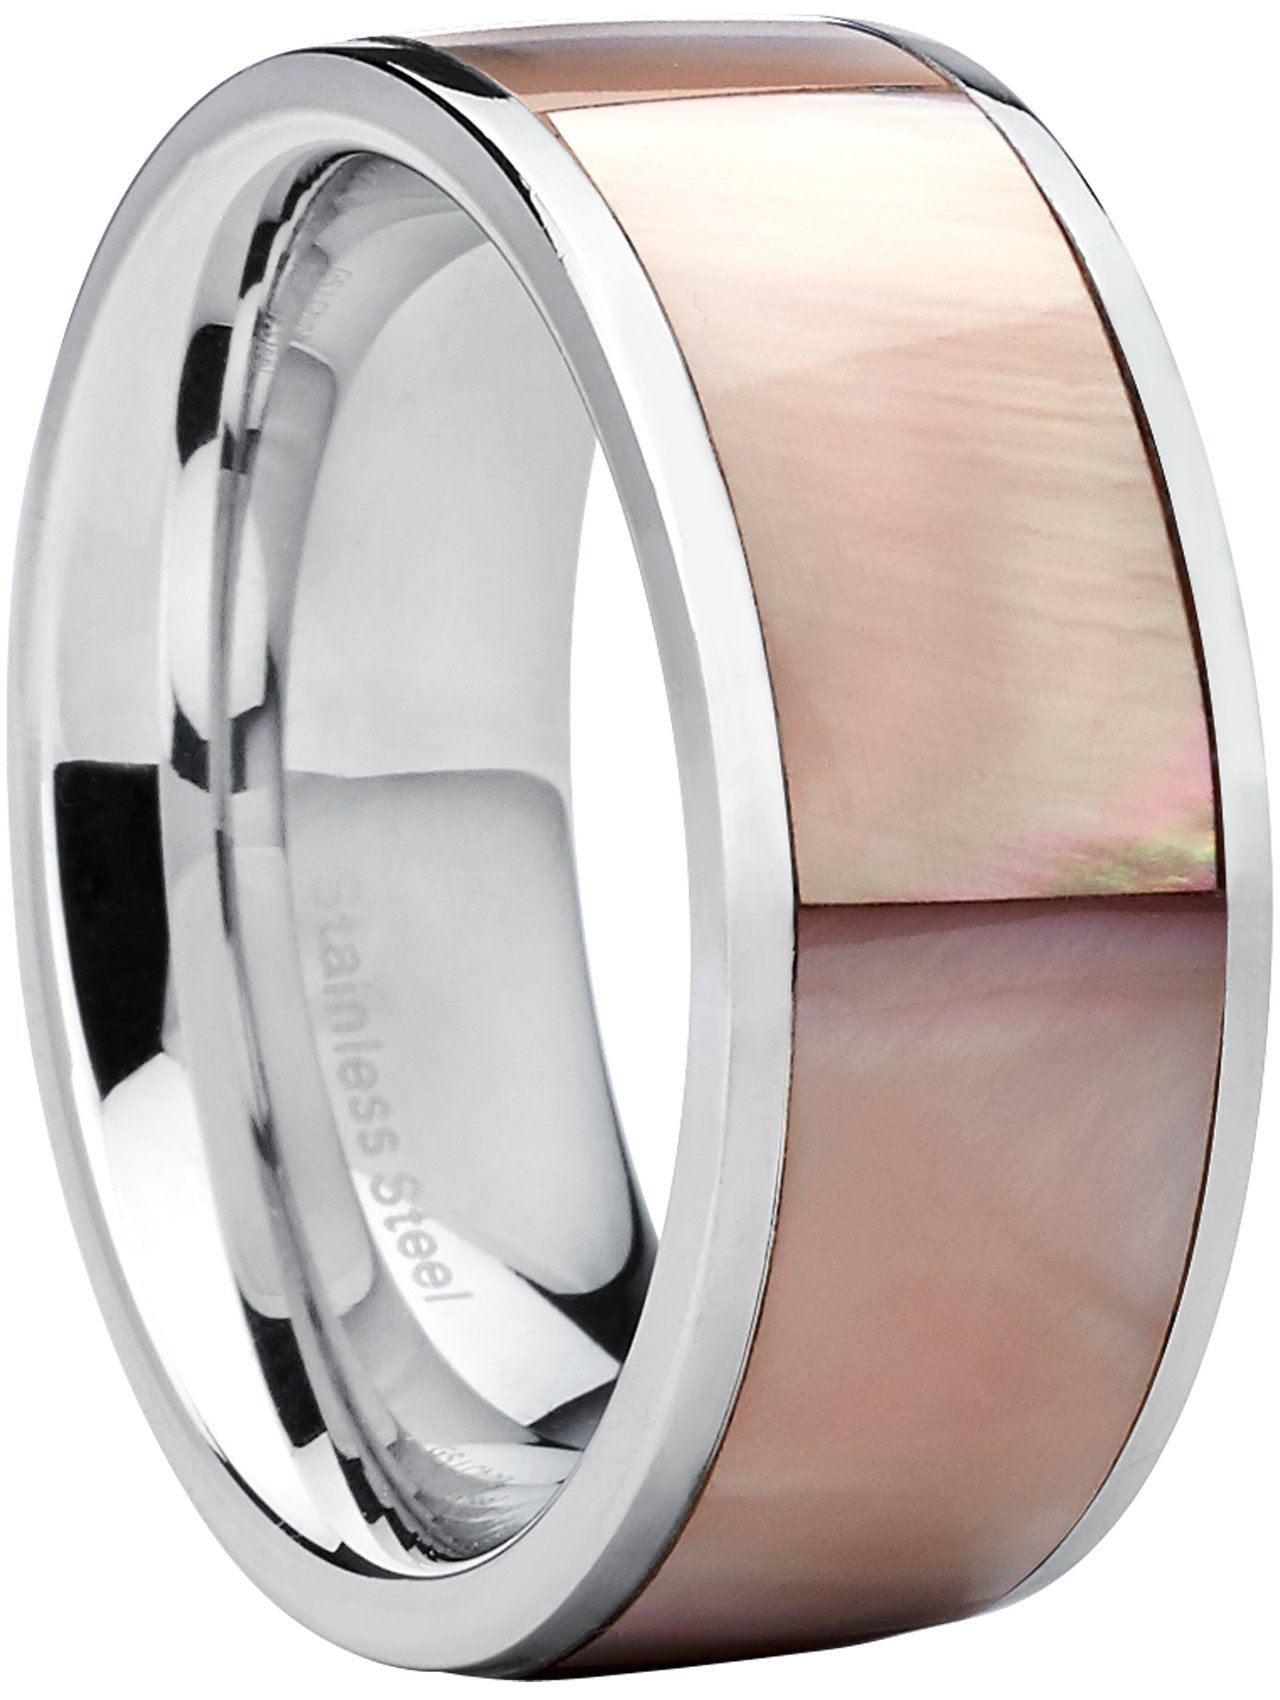 Metal Masters Co. Flat Top Stainless Steel Women's Pink Mother Of Pearl Wedding Ring Fashion Band 6